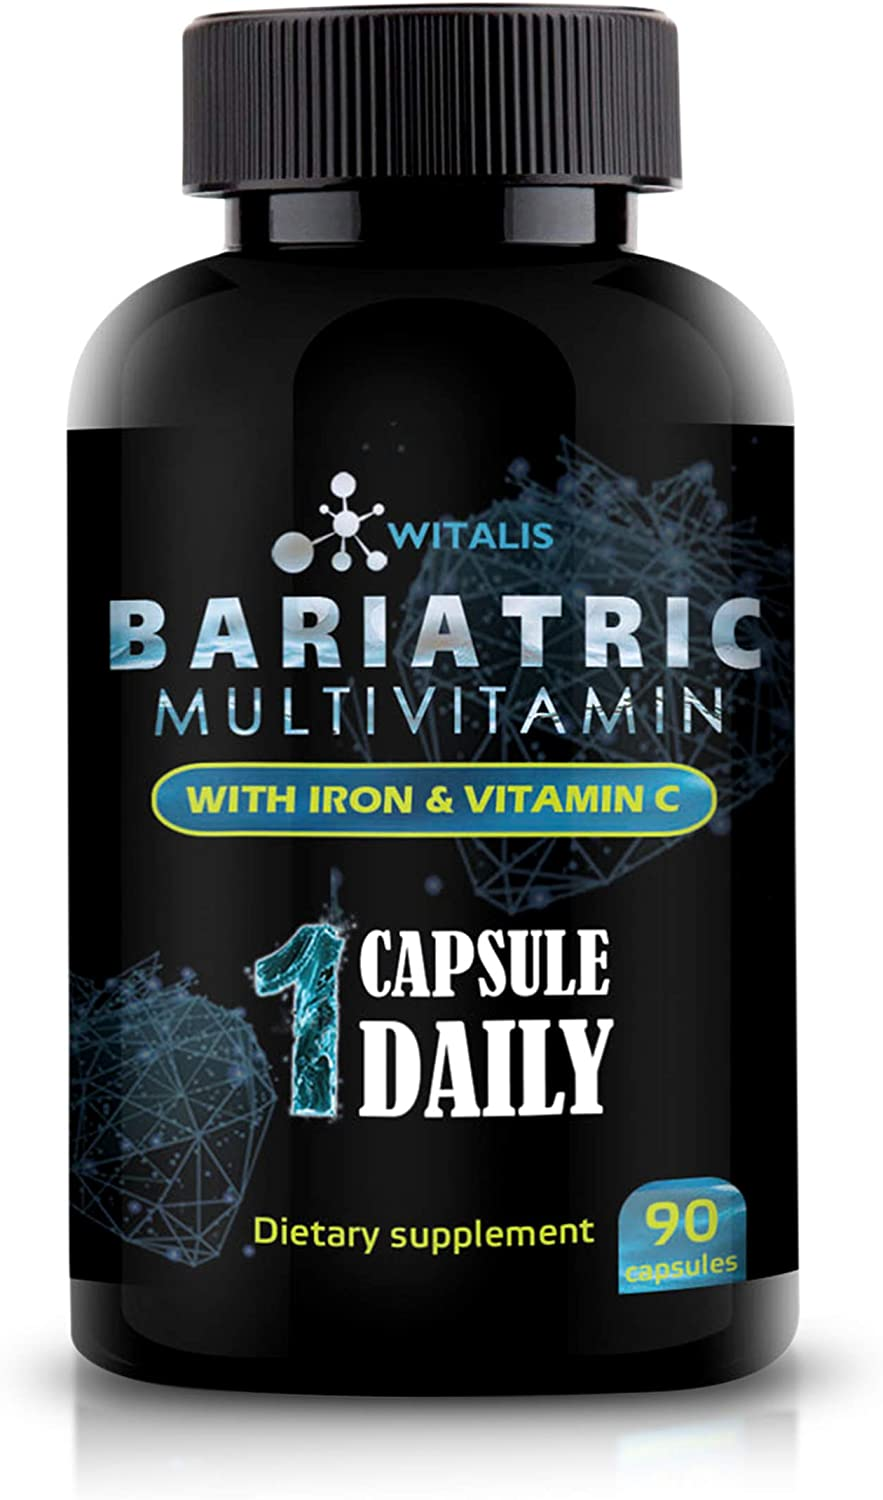 Bariatric Multivitamin - Vitamins for Post Gastric Bypass & Sleeve - Advantage for Weight Loss Surgery -with 30mg Iron & Vitamin C - 90 Vegan, Non-GMO, Dairy & Soy Free - Post Bariatric Health